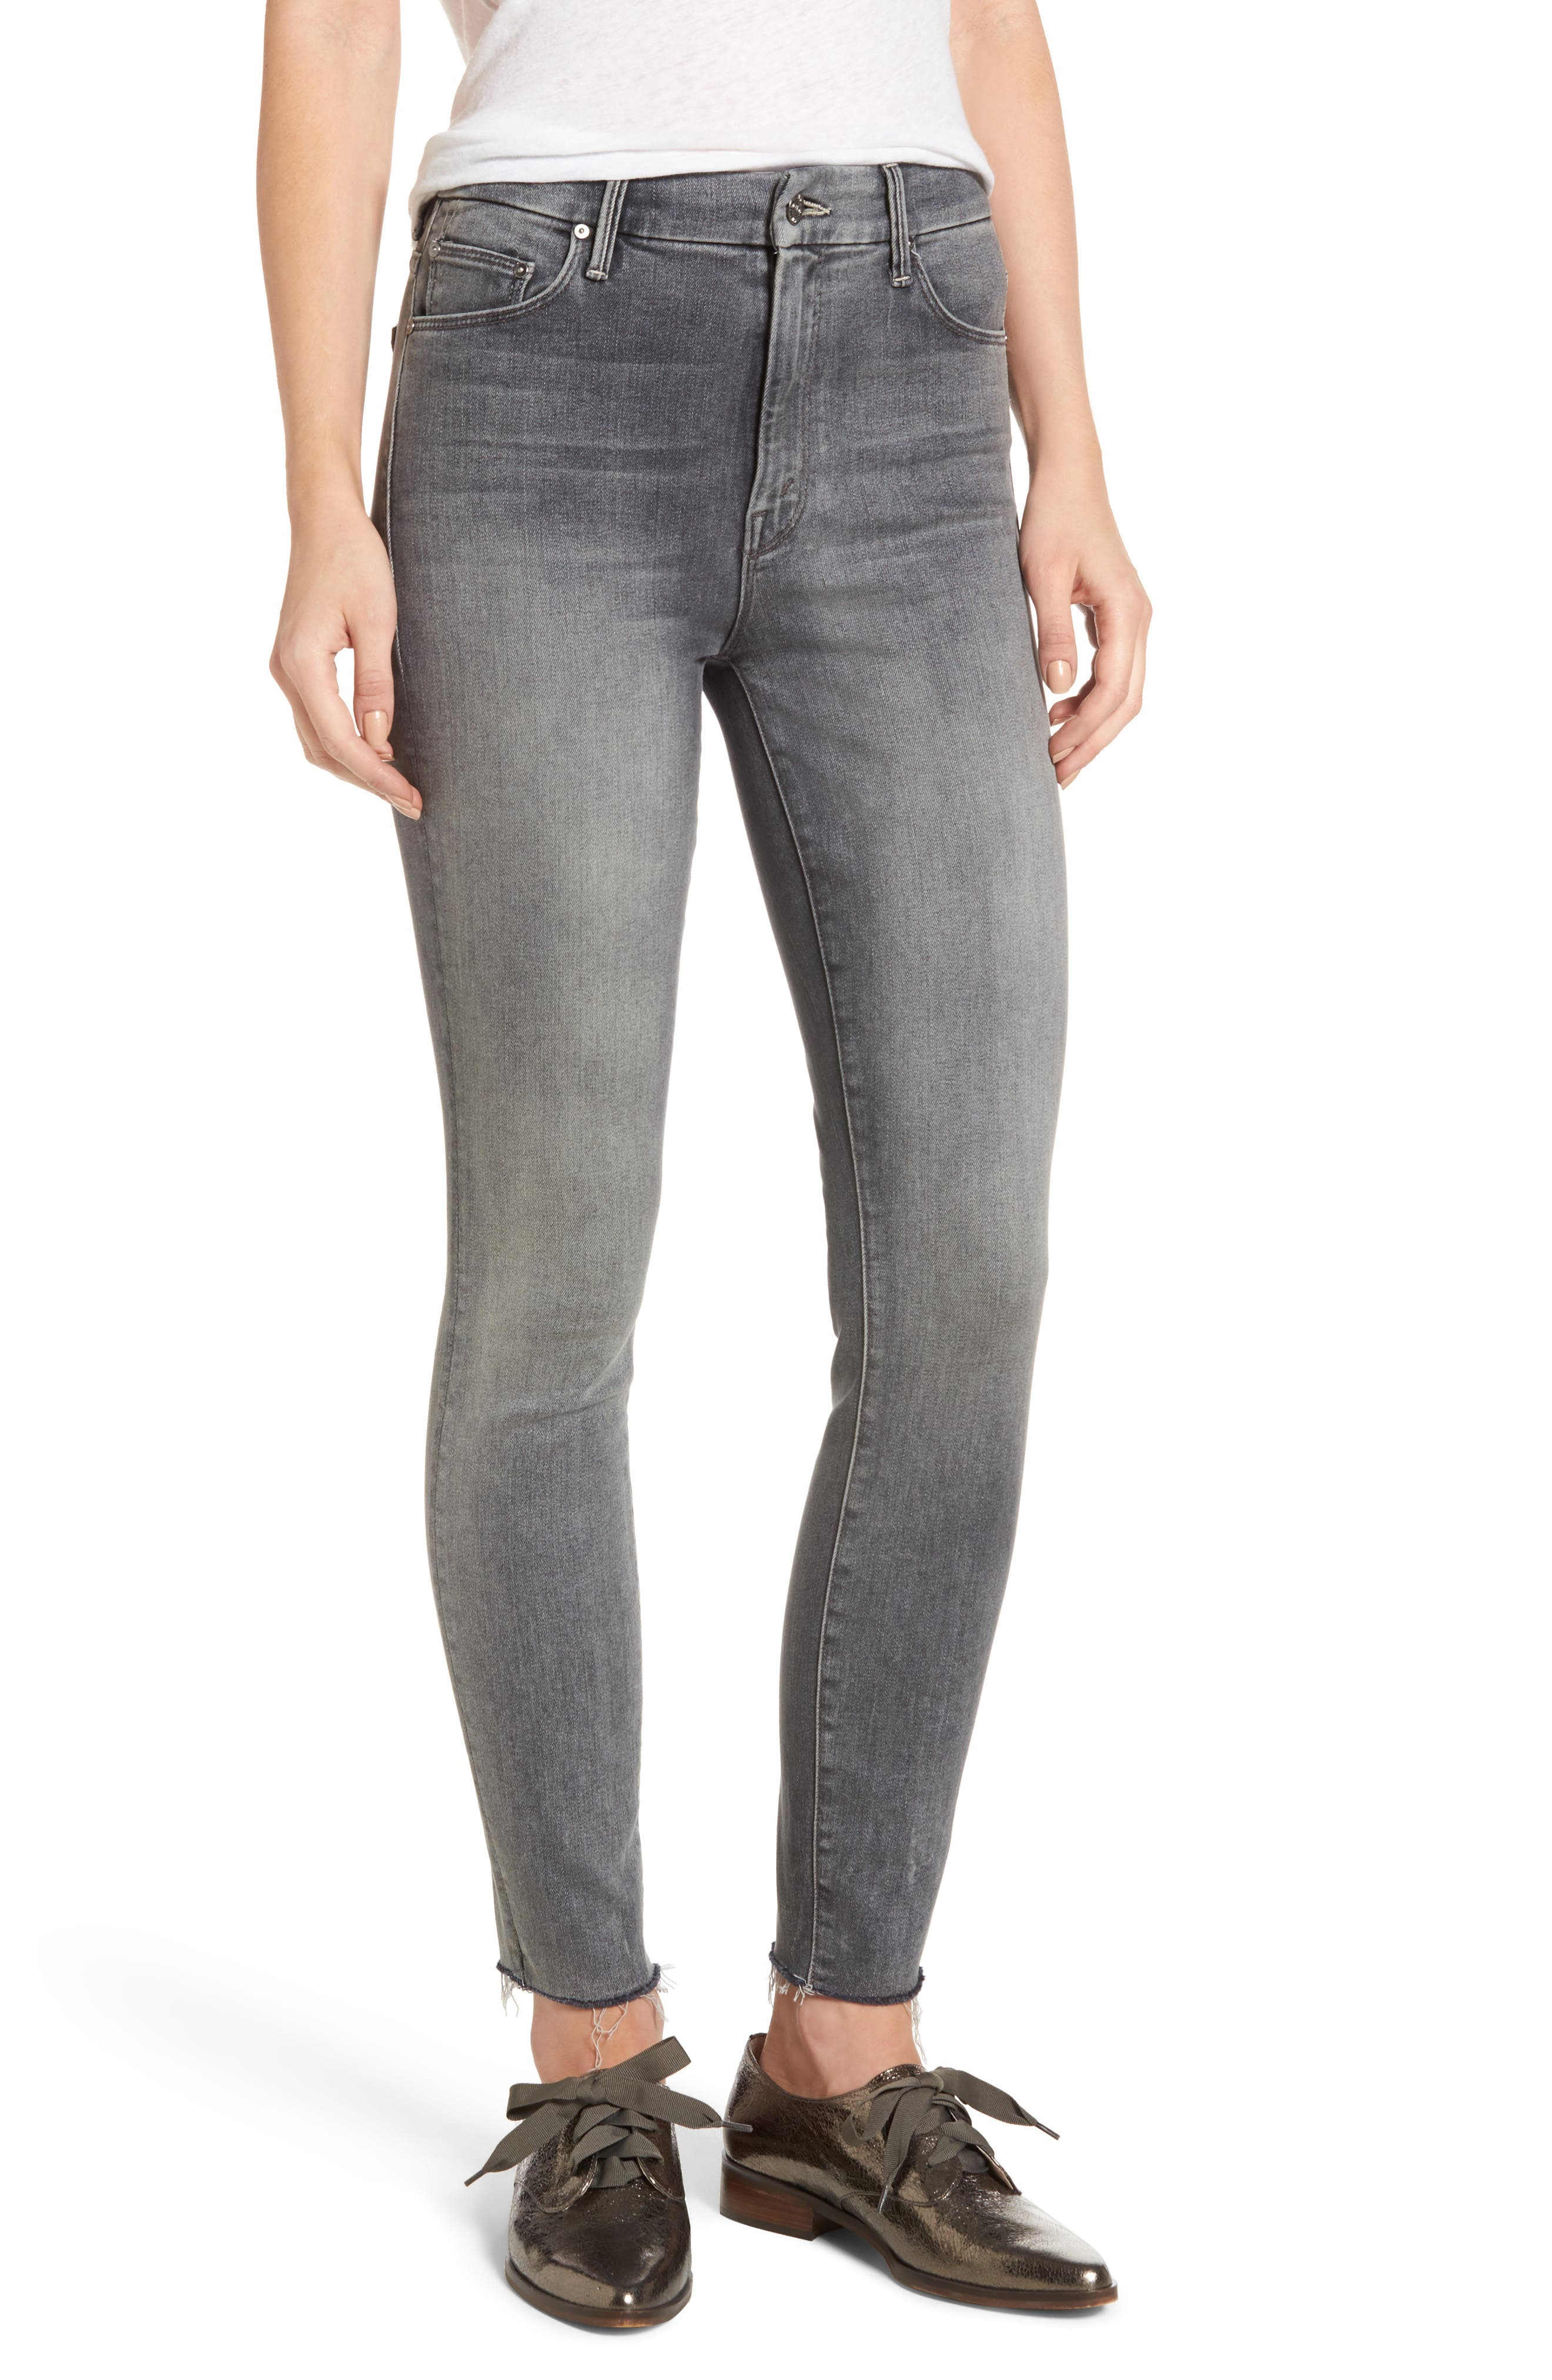 Alternate Image 1 Selected - MOTHER The Looker Frayed Ankle Skinny Jeans (Huntress)